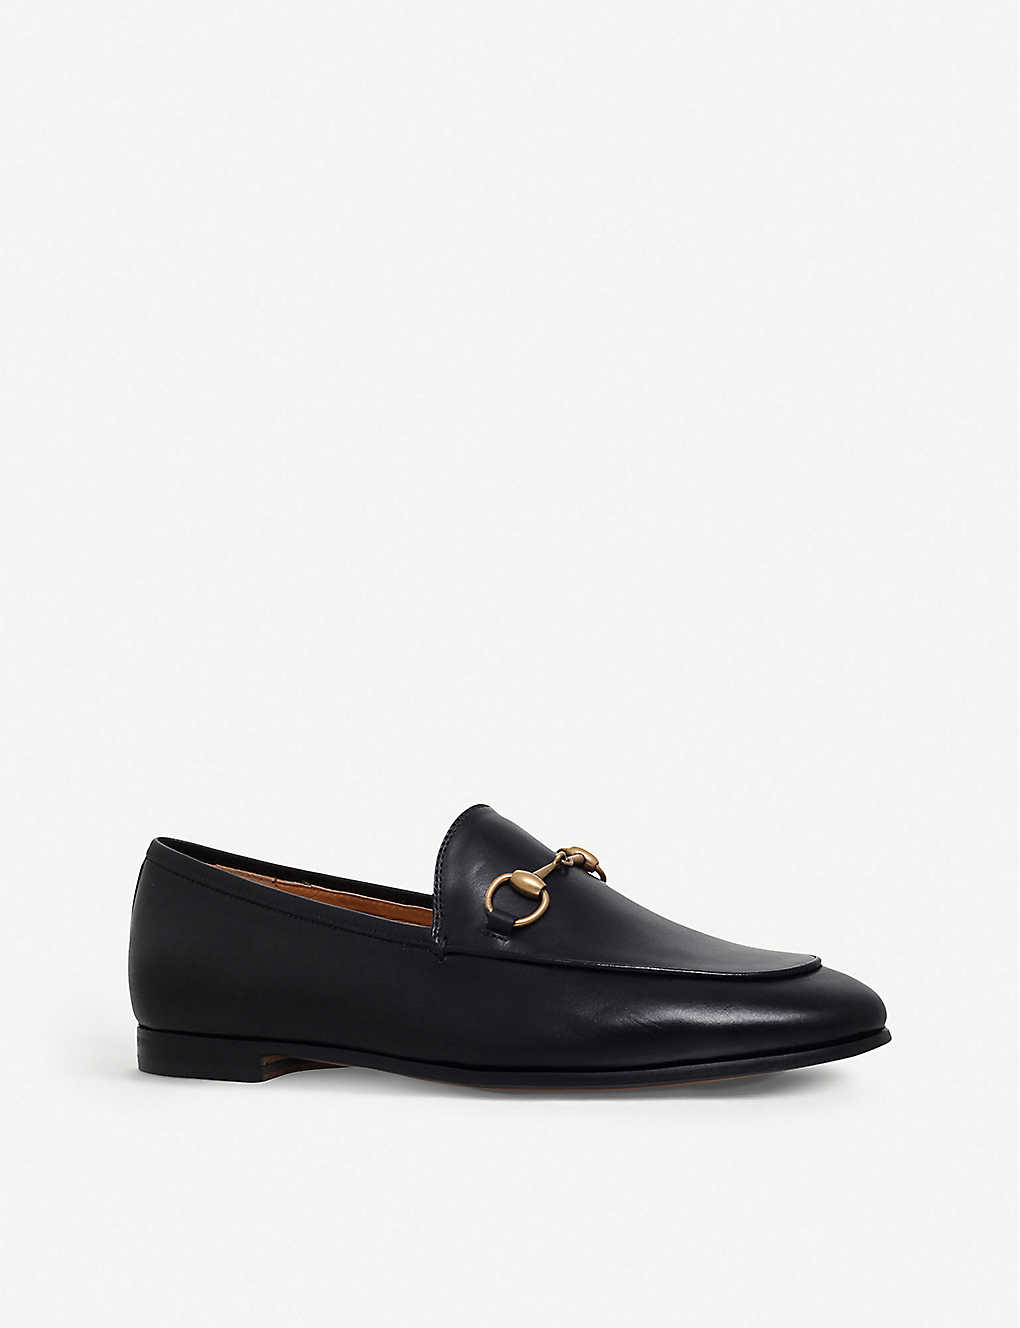 99cba1a0aef6 ... Jordaan leather loafers - Black ...